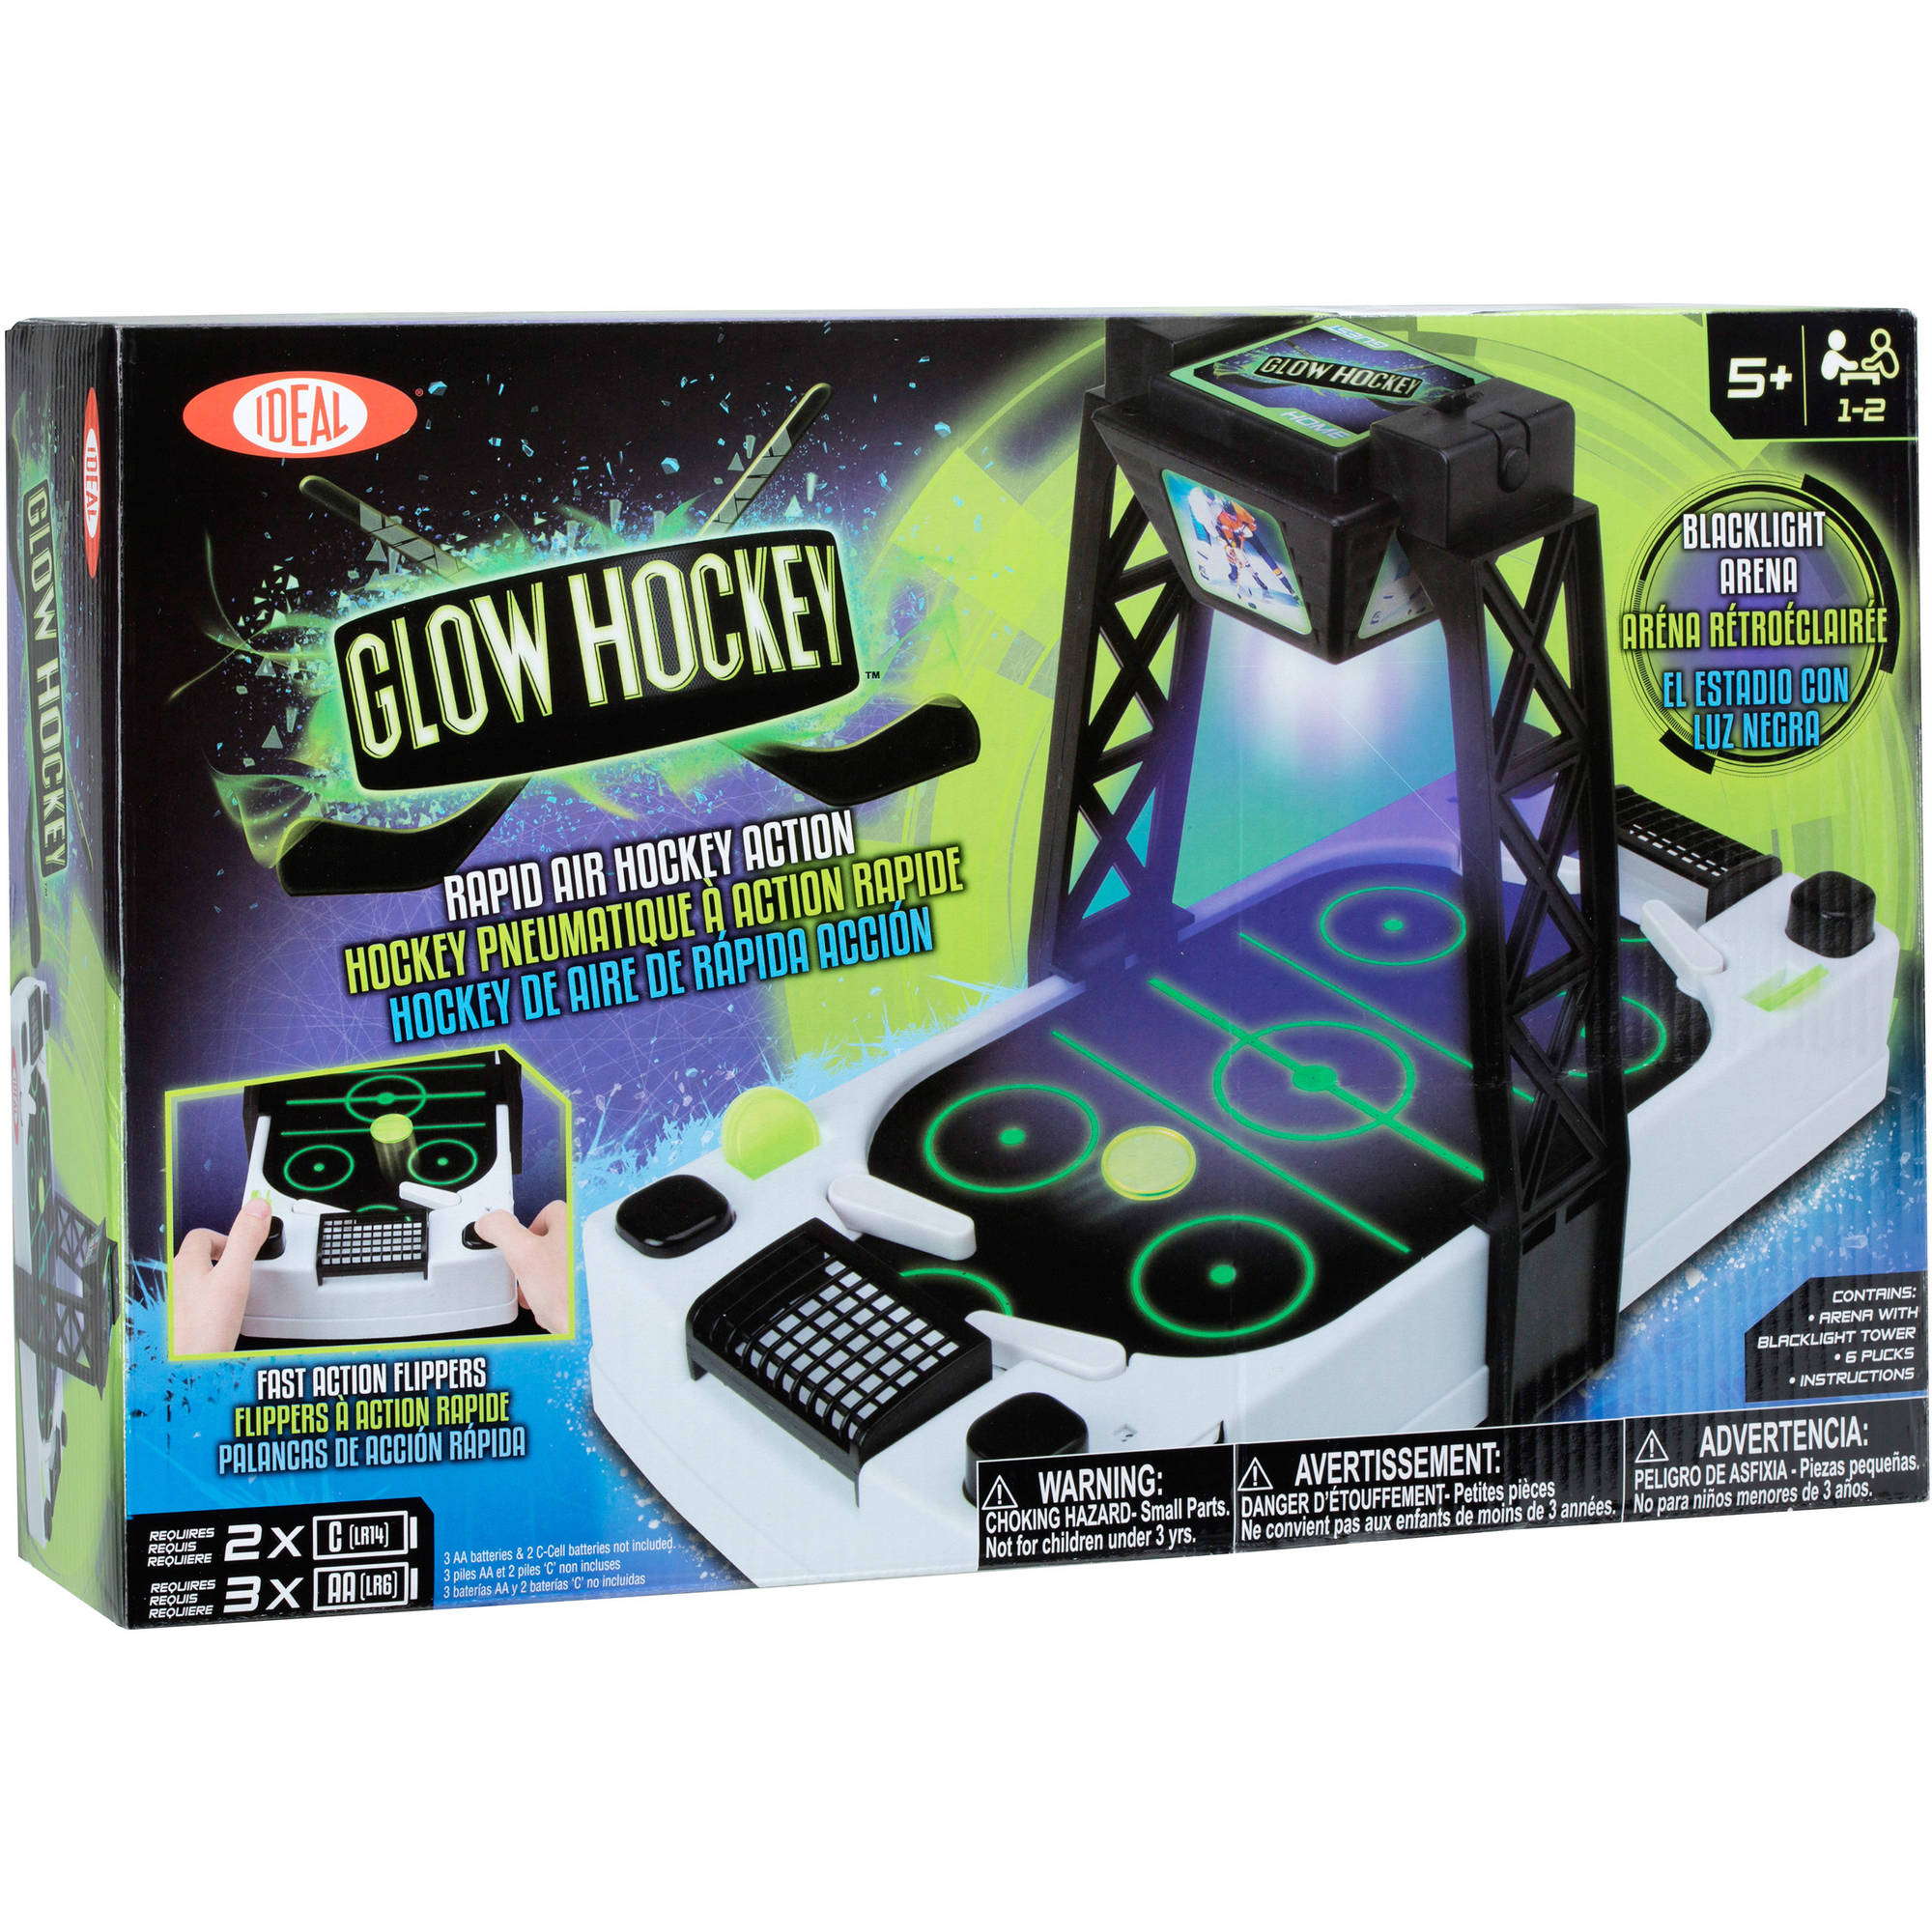 Ideal Glow Hockey